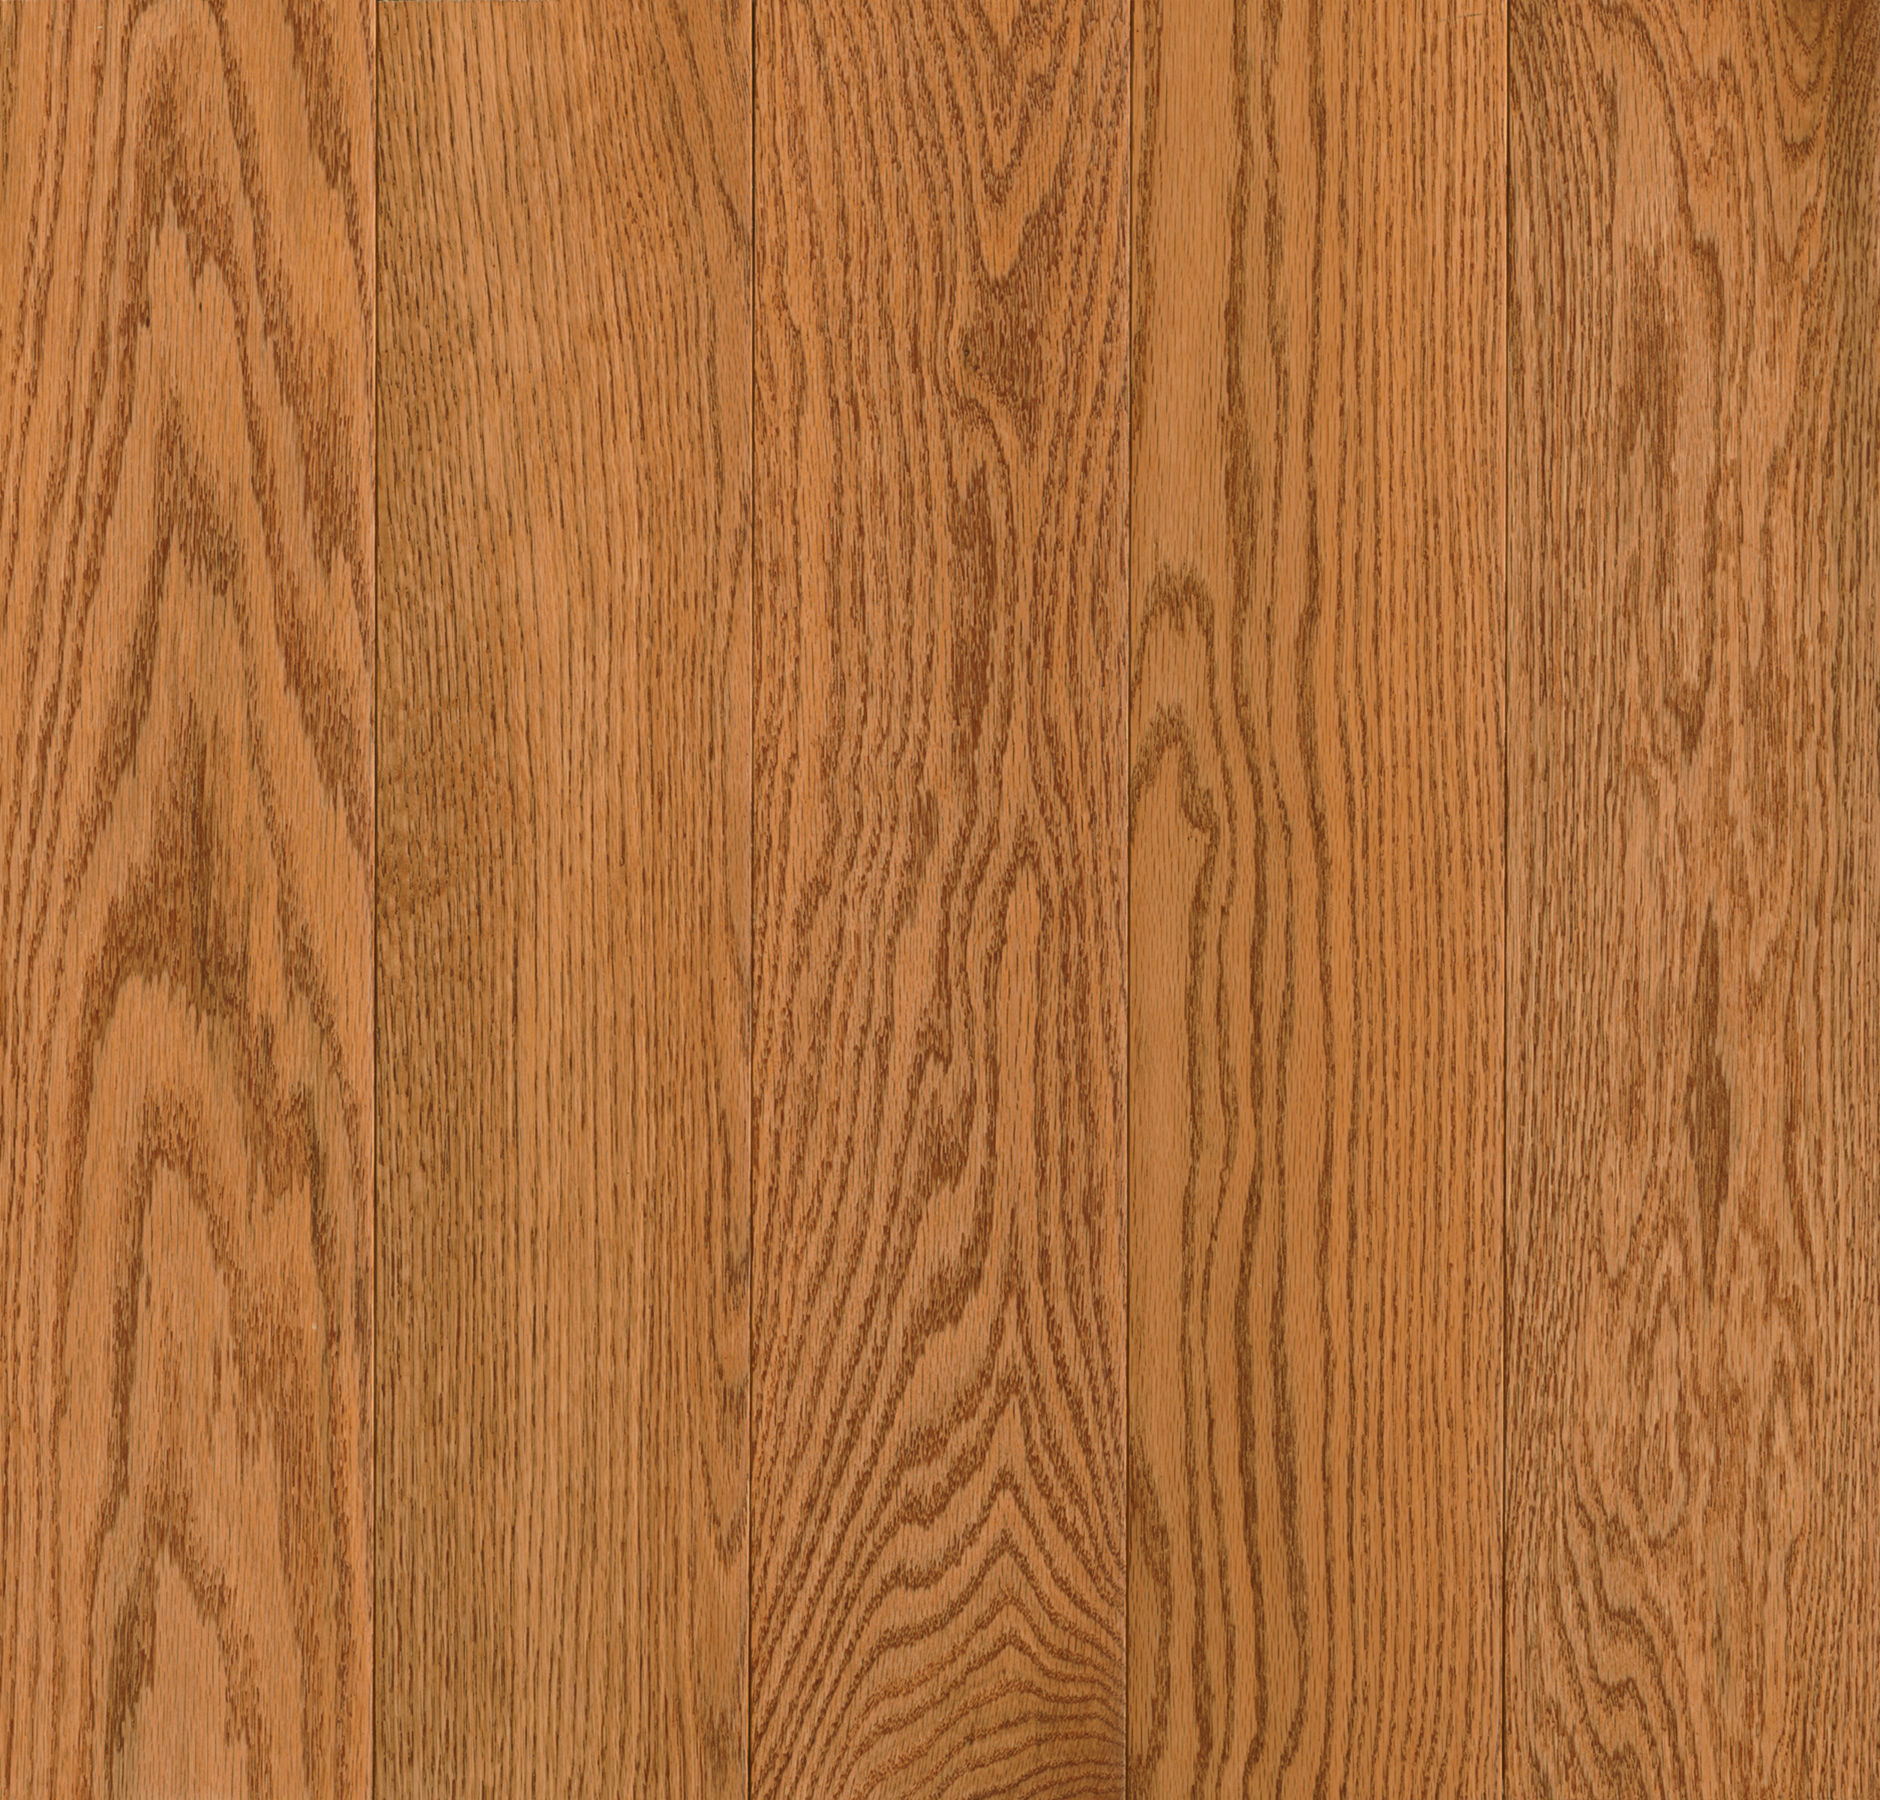 Northern Red Oak 5″